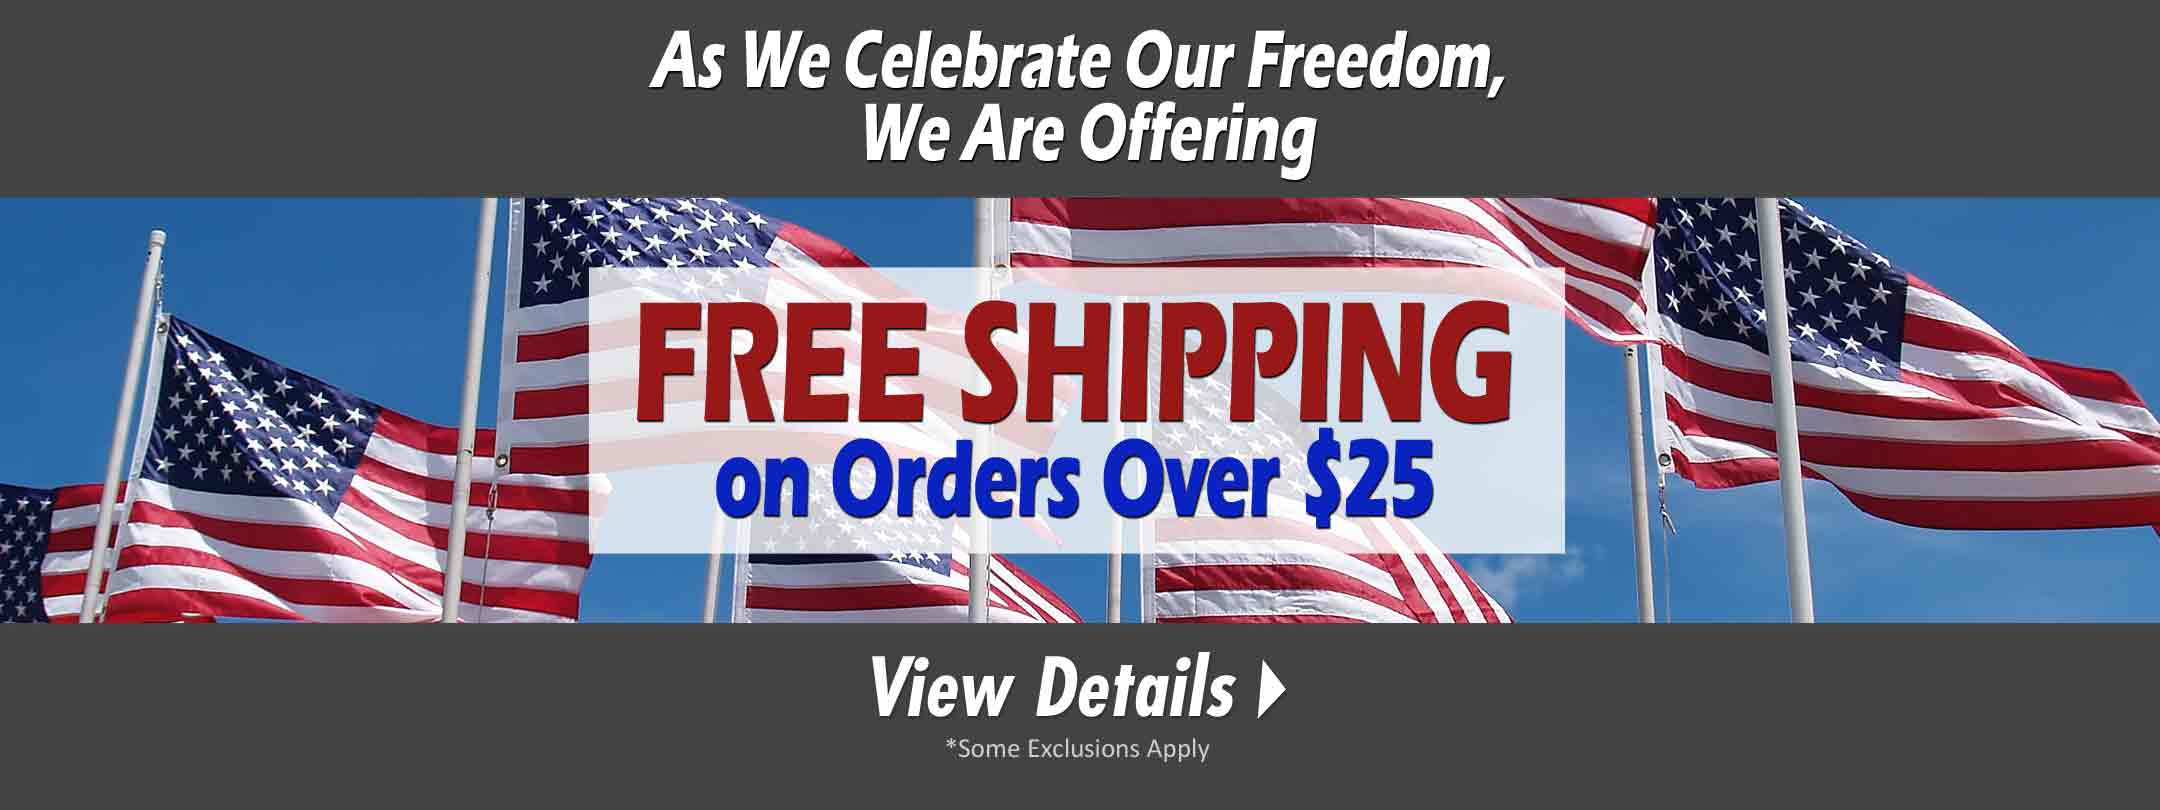 One Day Only - Free Shipping on Independence Day